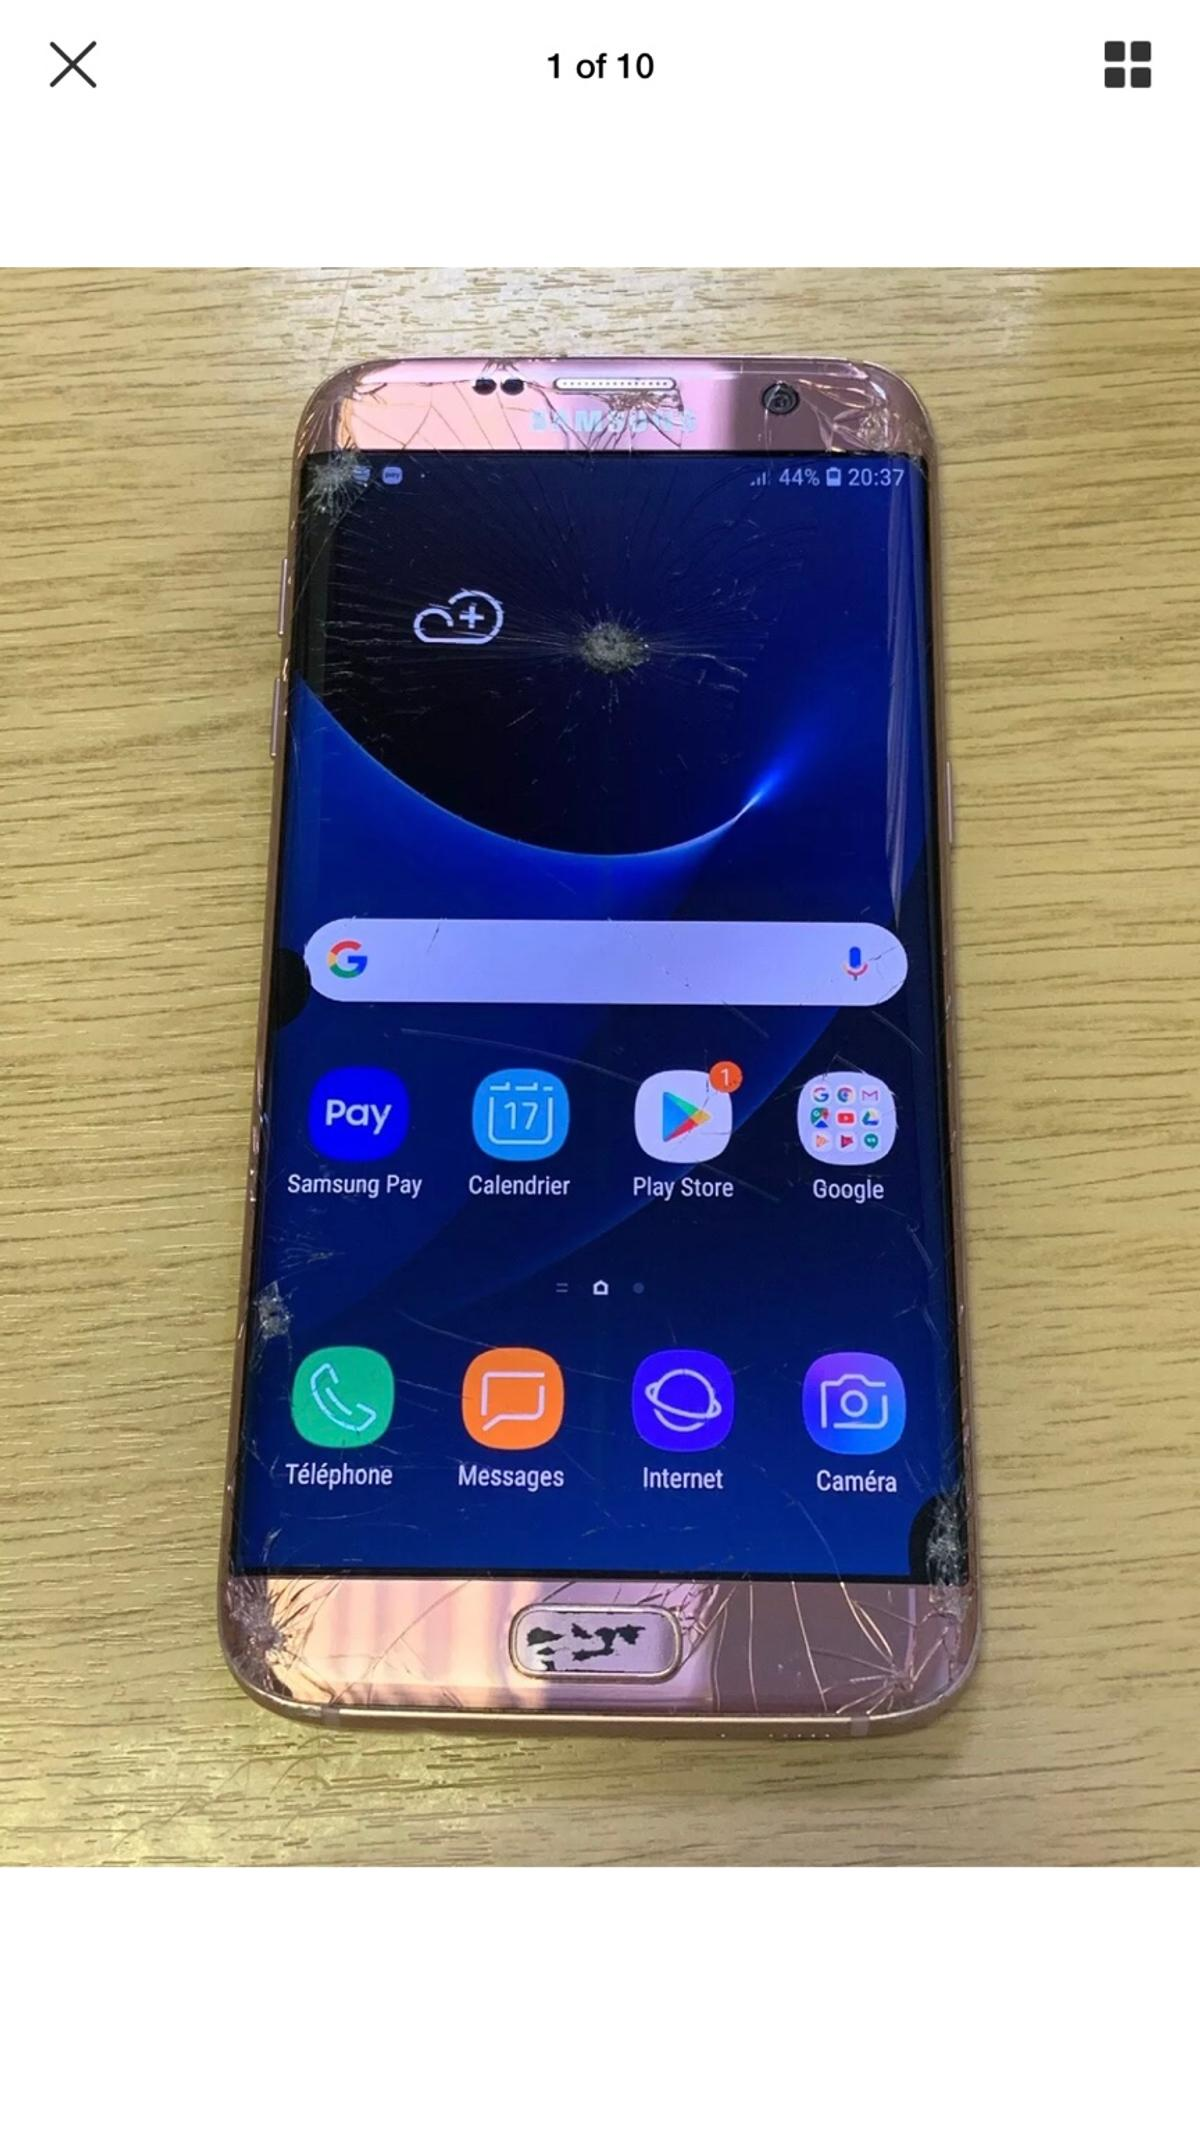 Calendrier Samsung S7.Samsung Galaxy S7 Edge In Nn8 Wellingborough For 45 00 For